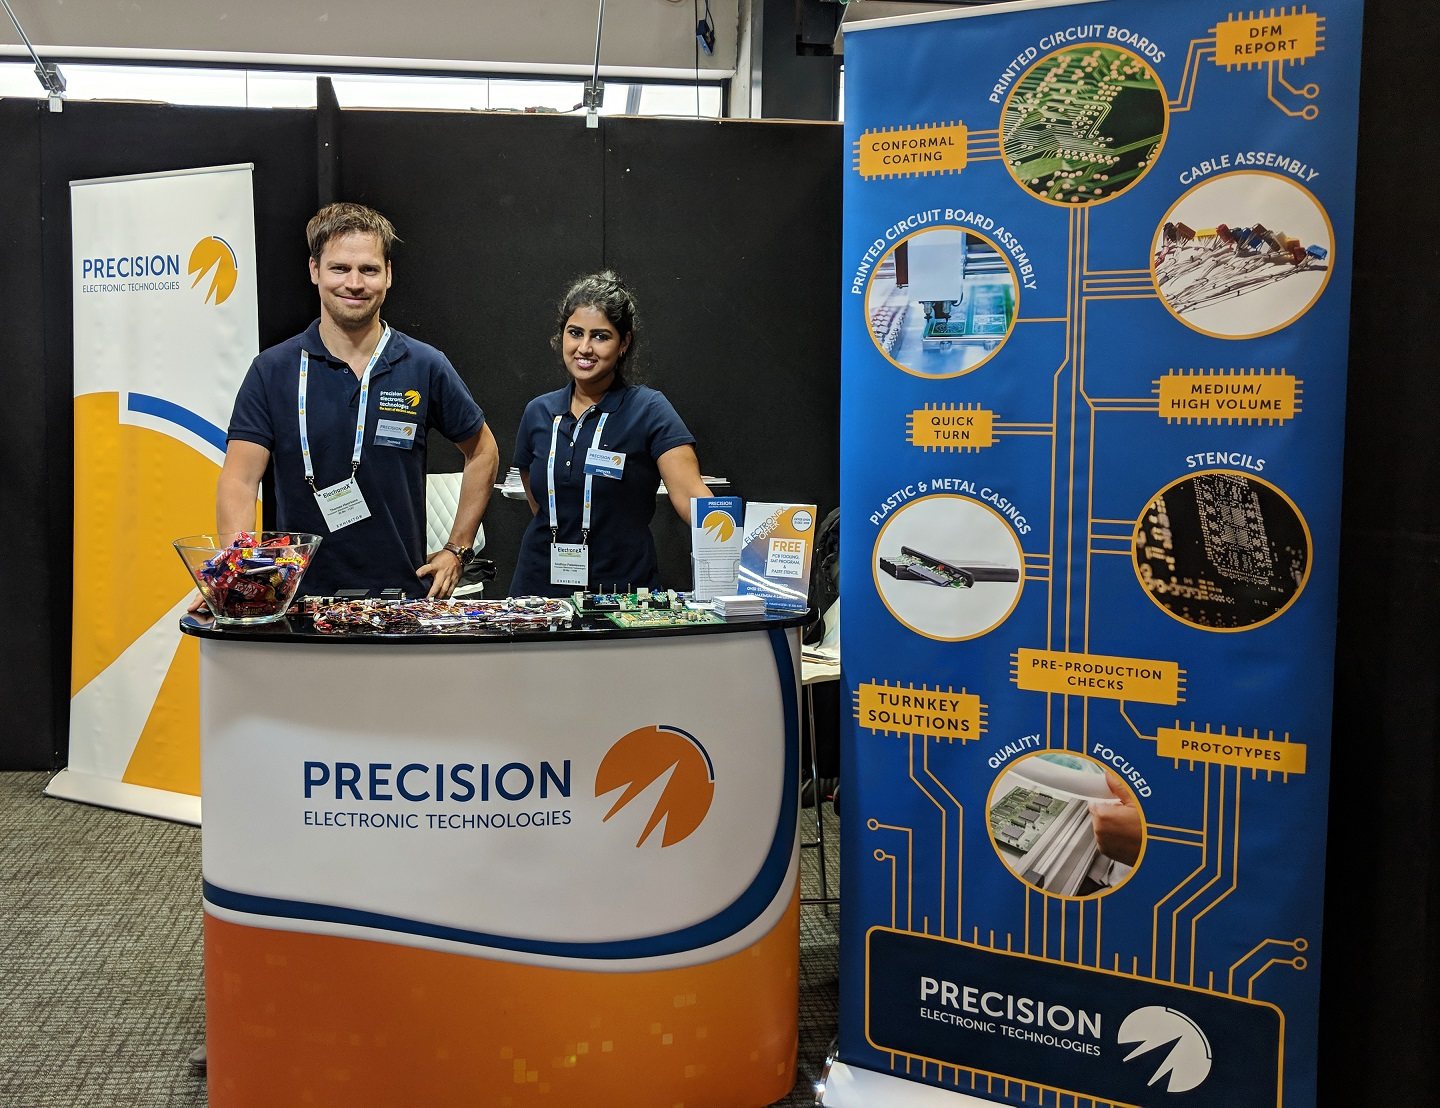 The Precision stand at Electronex 2018